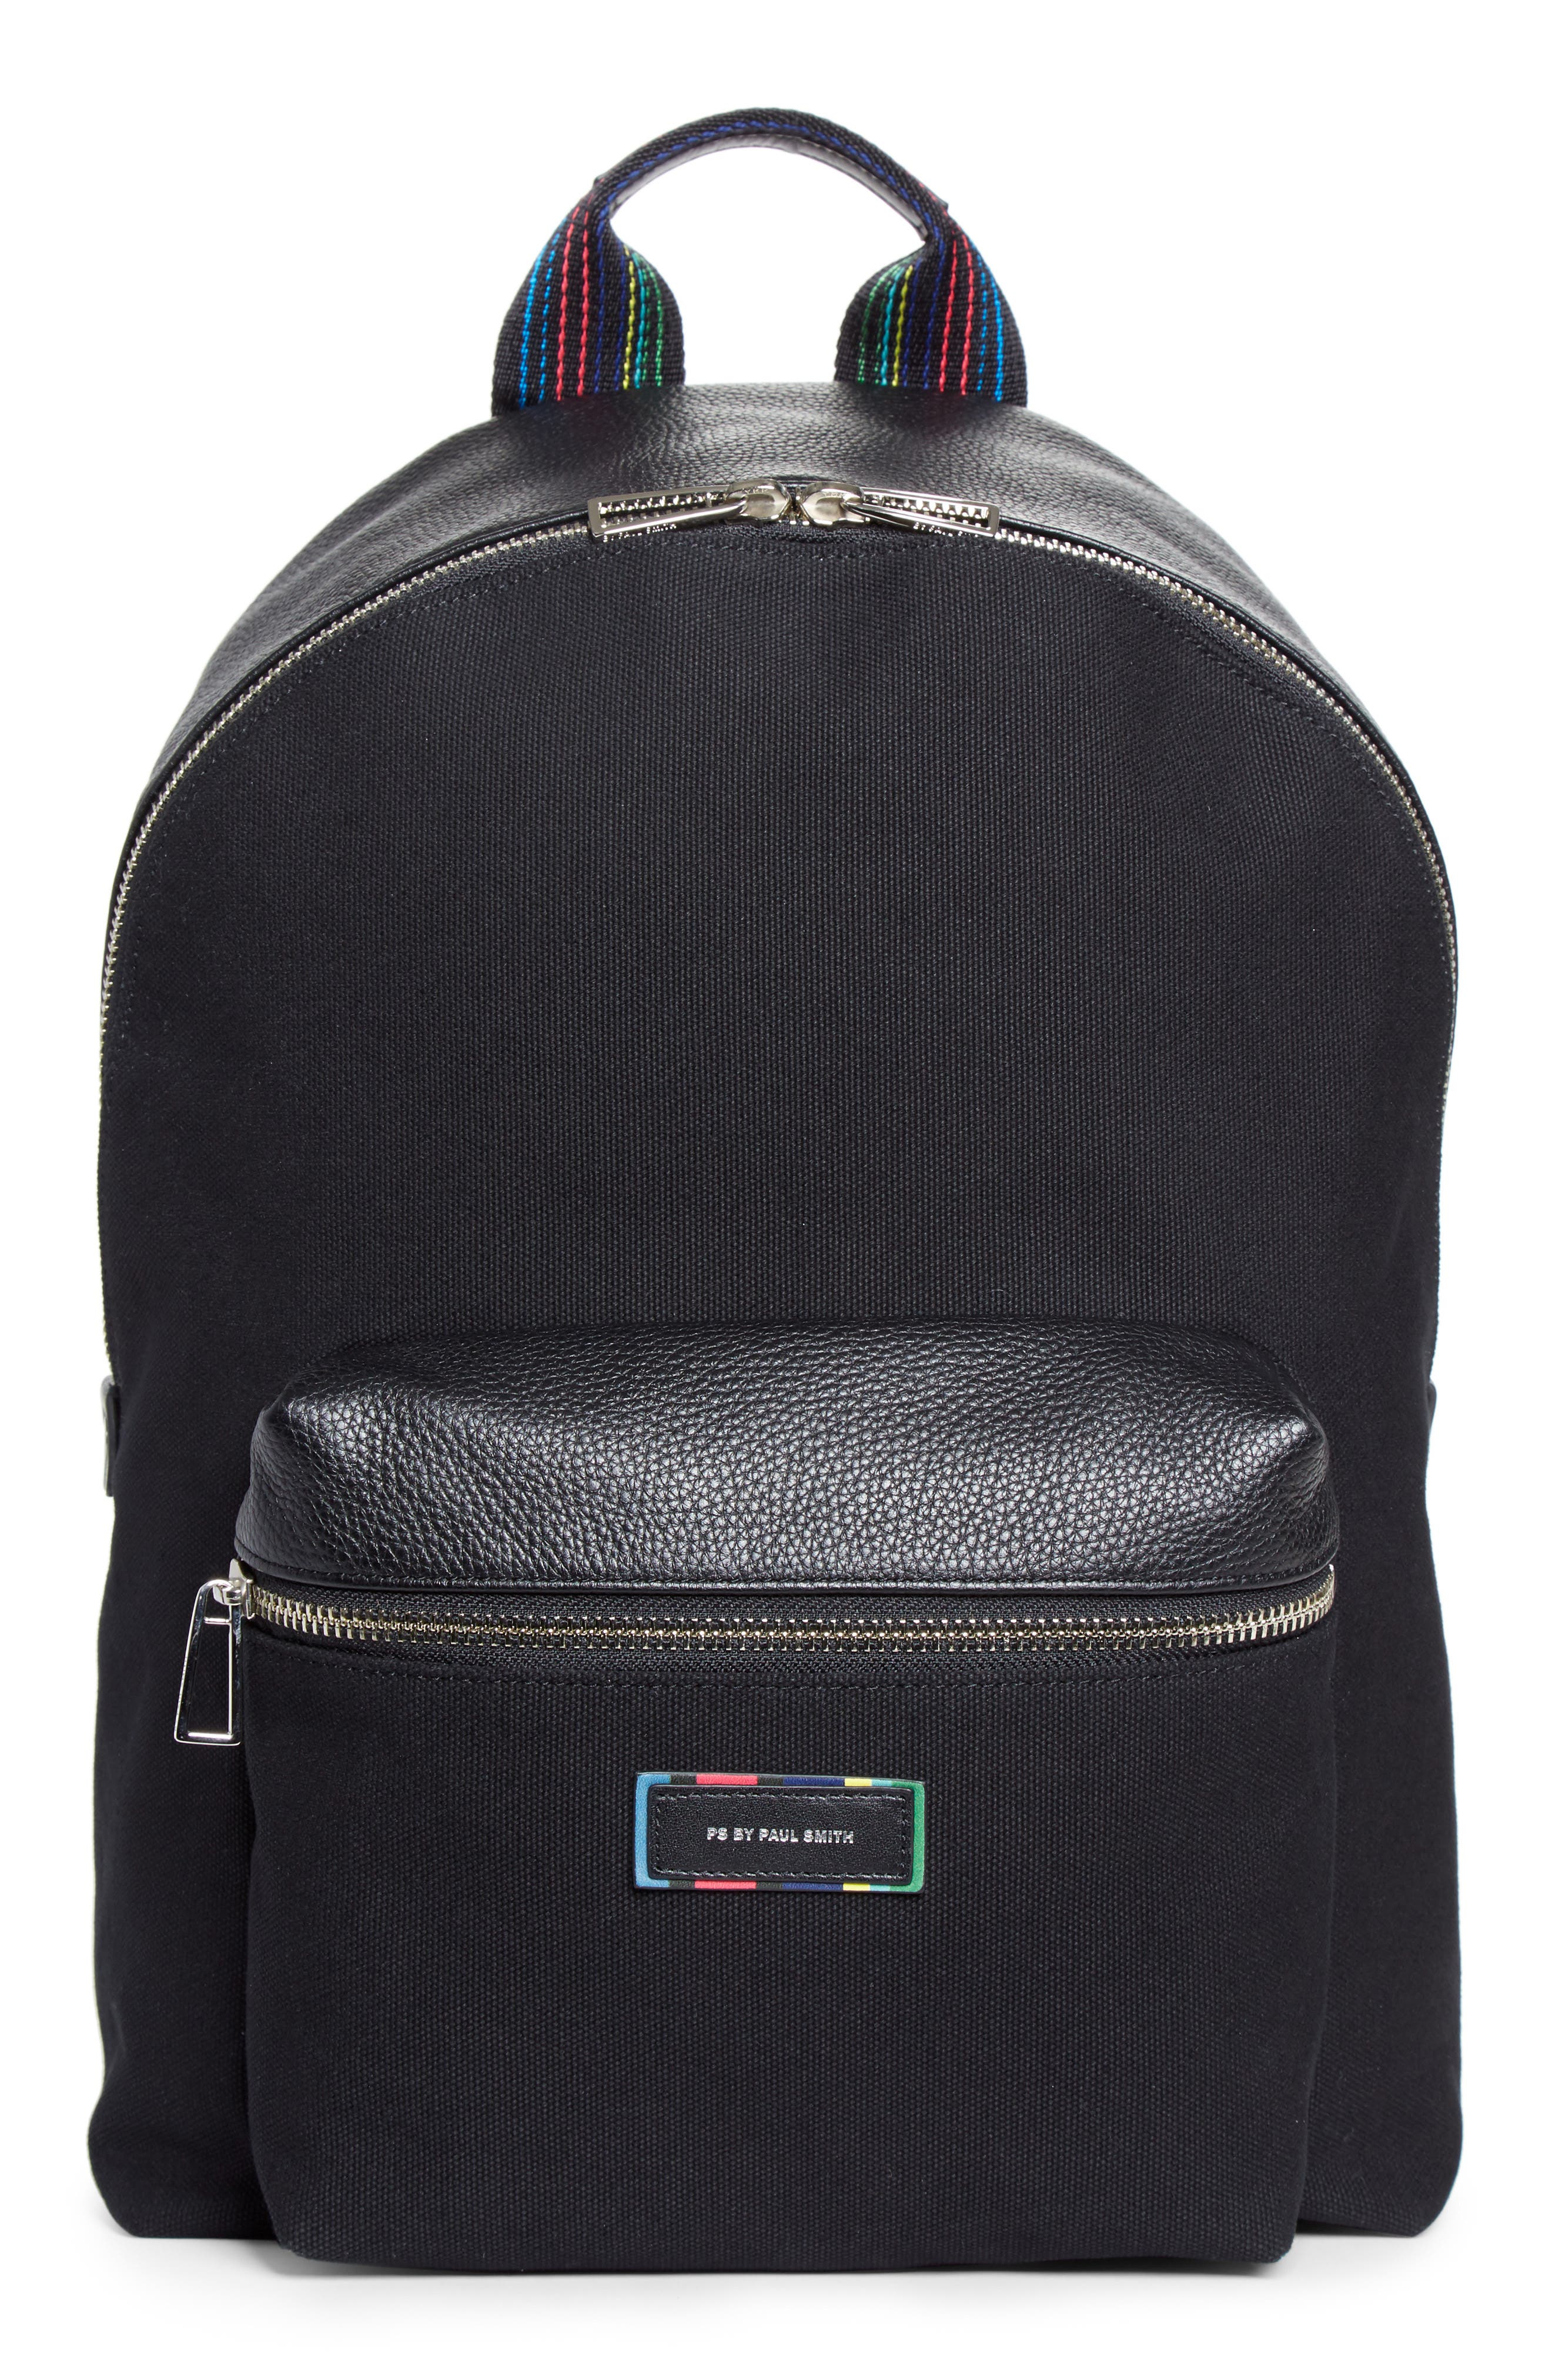 Leather Trim Canvas Backpack,                             Main thumbnail 1, color,                             001